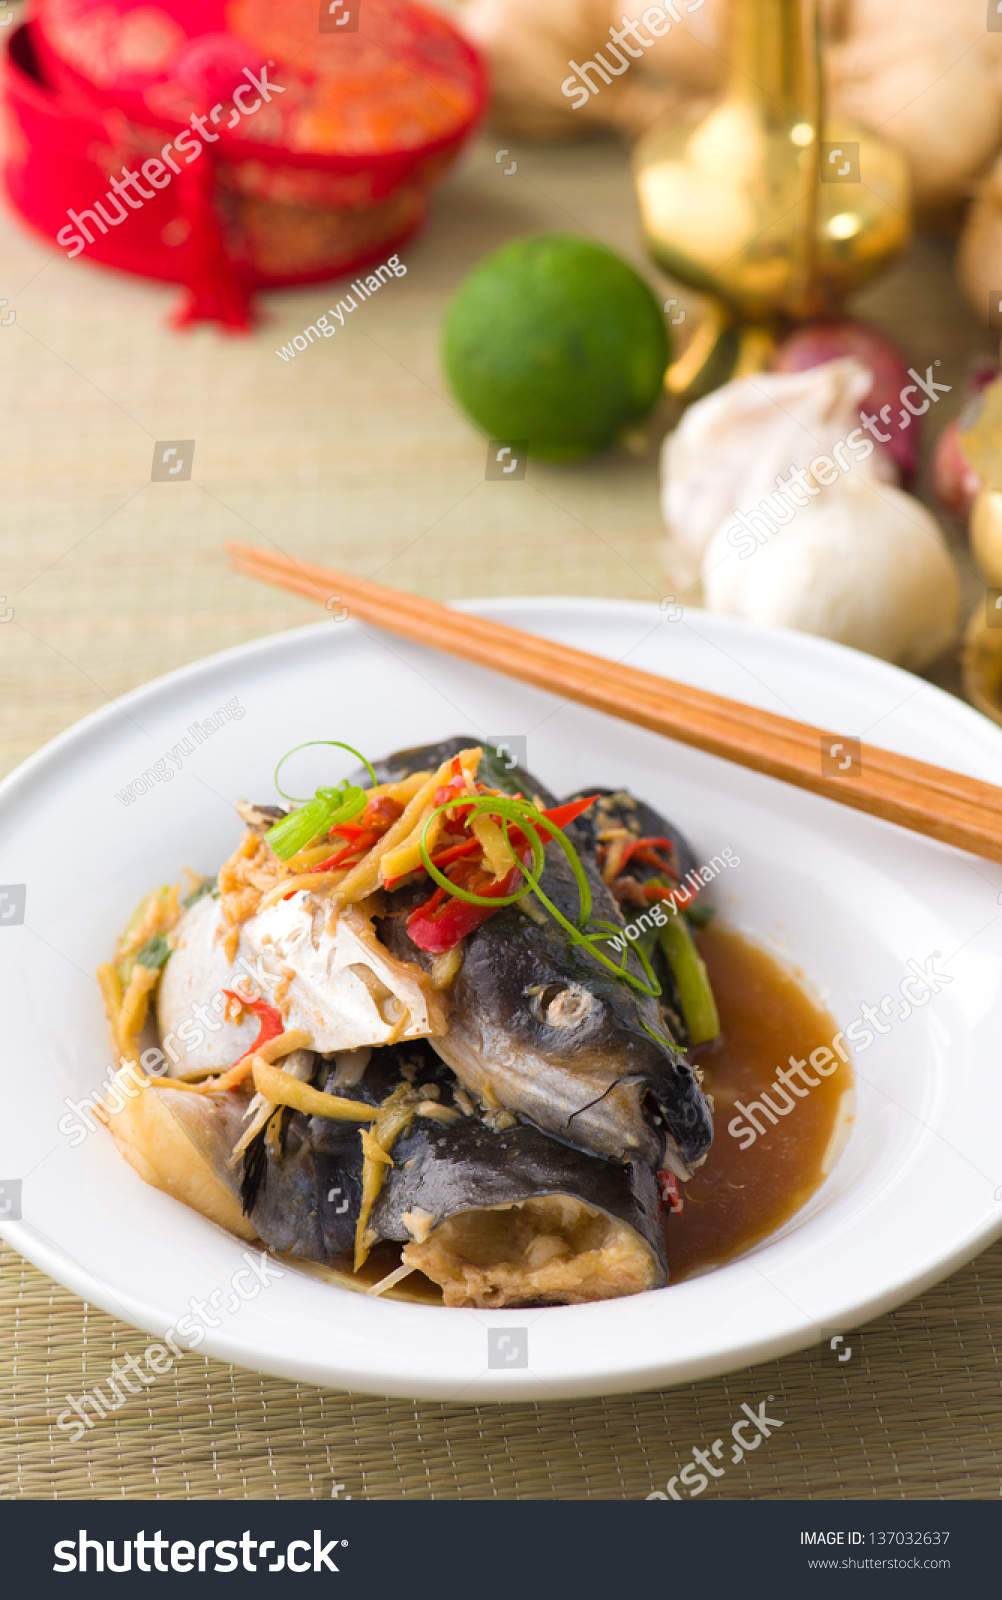 Steam fish head soy sauce stock photo 137032637 shutterstock for Soy sauce fish